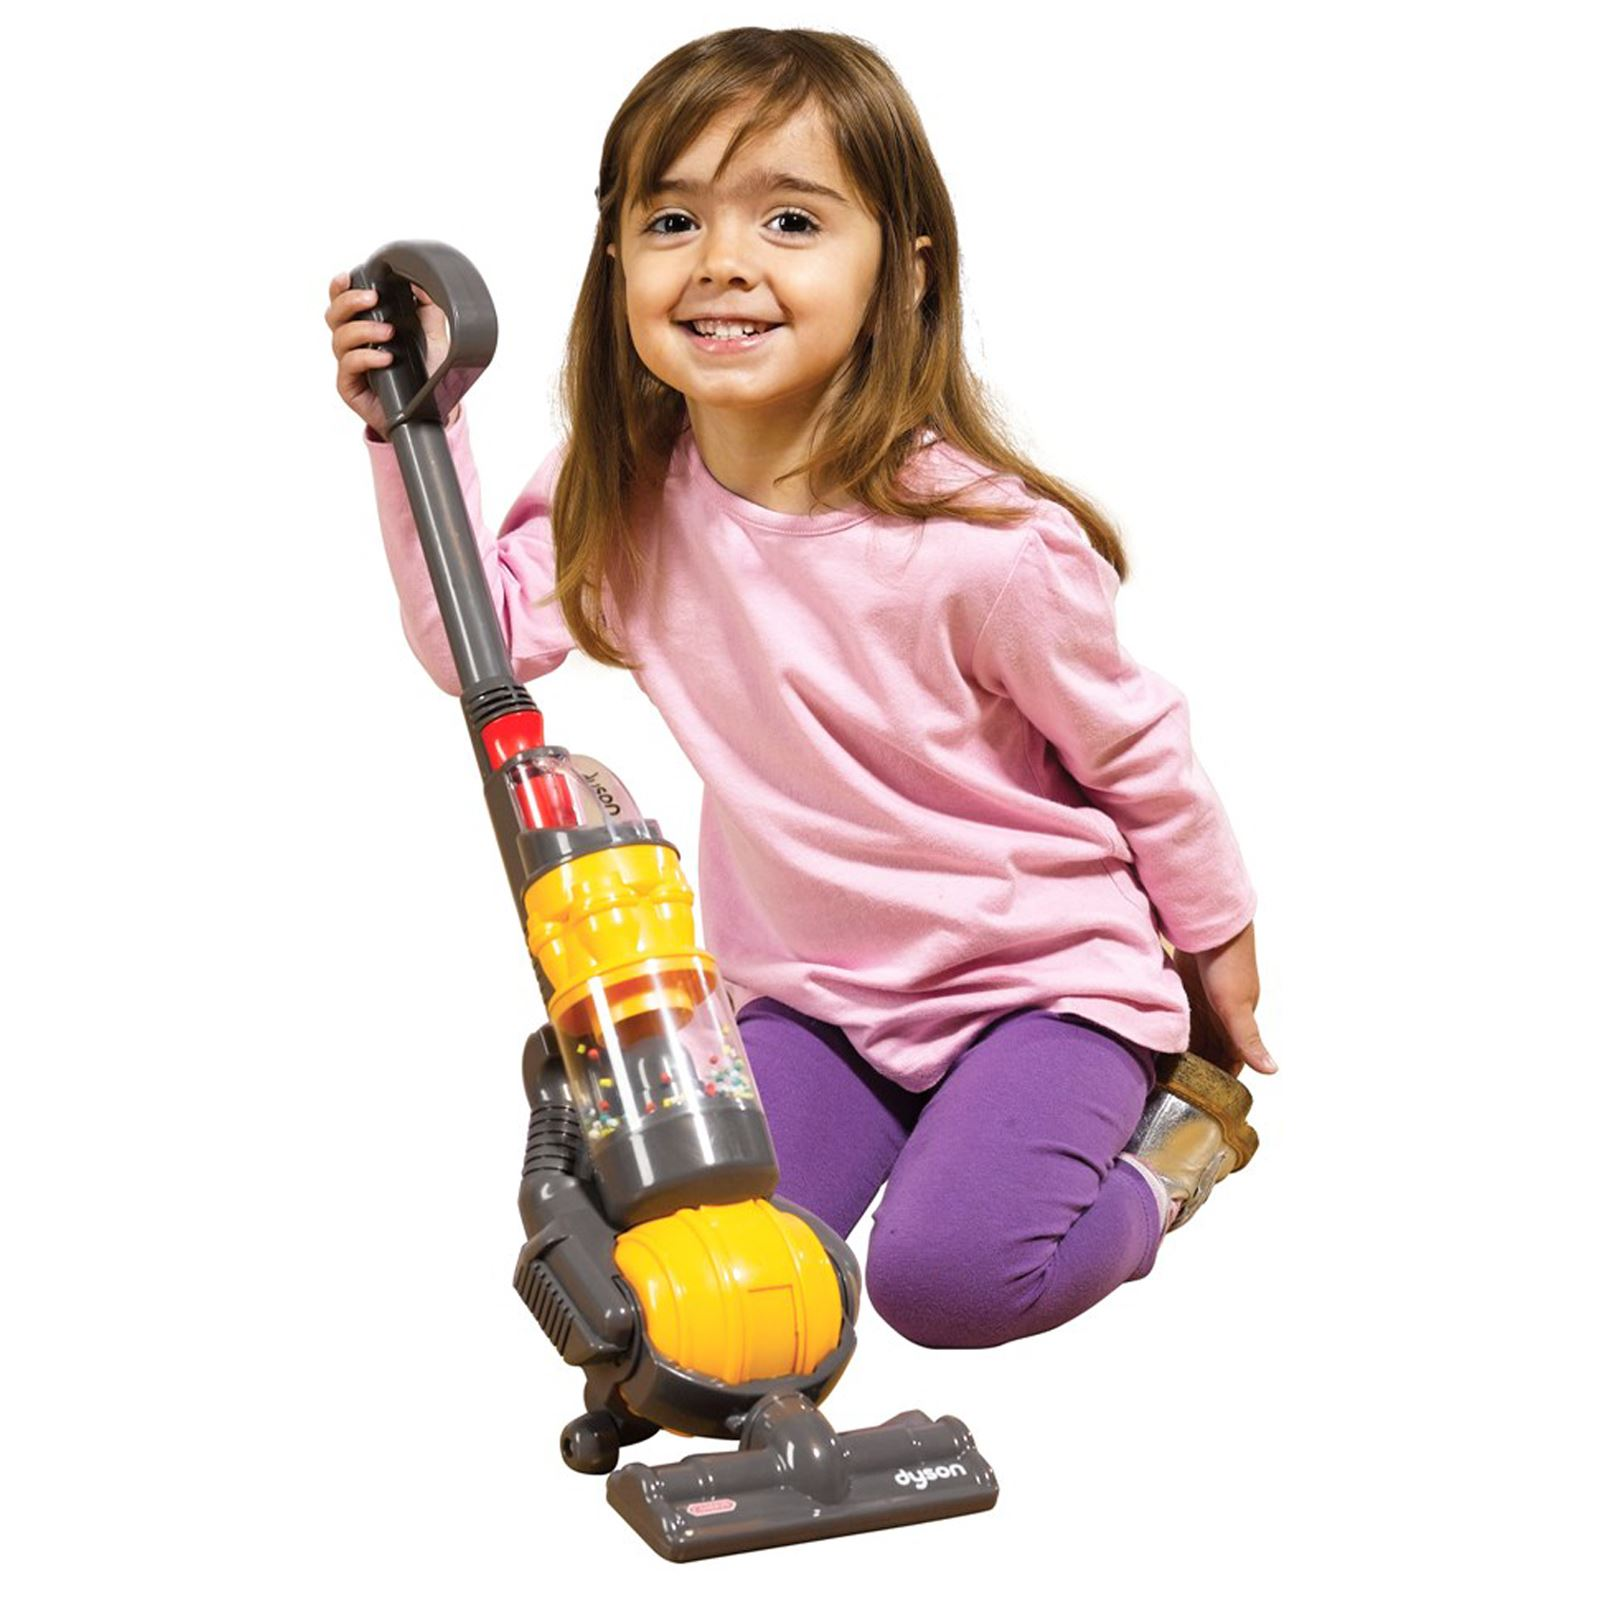 Indexbild 2 - KIDS VACUUM CLEANERS - LITTLE HENRY HETTY DYSON - KIDS CHILDRENS ROLE PLAY